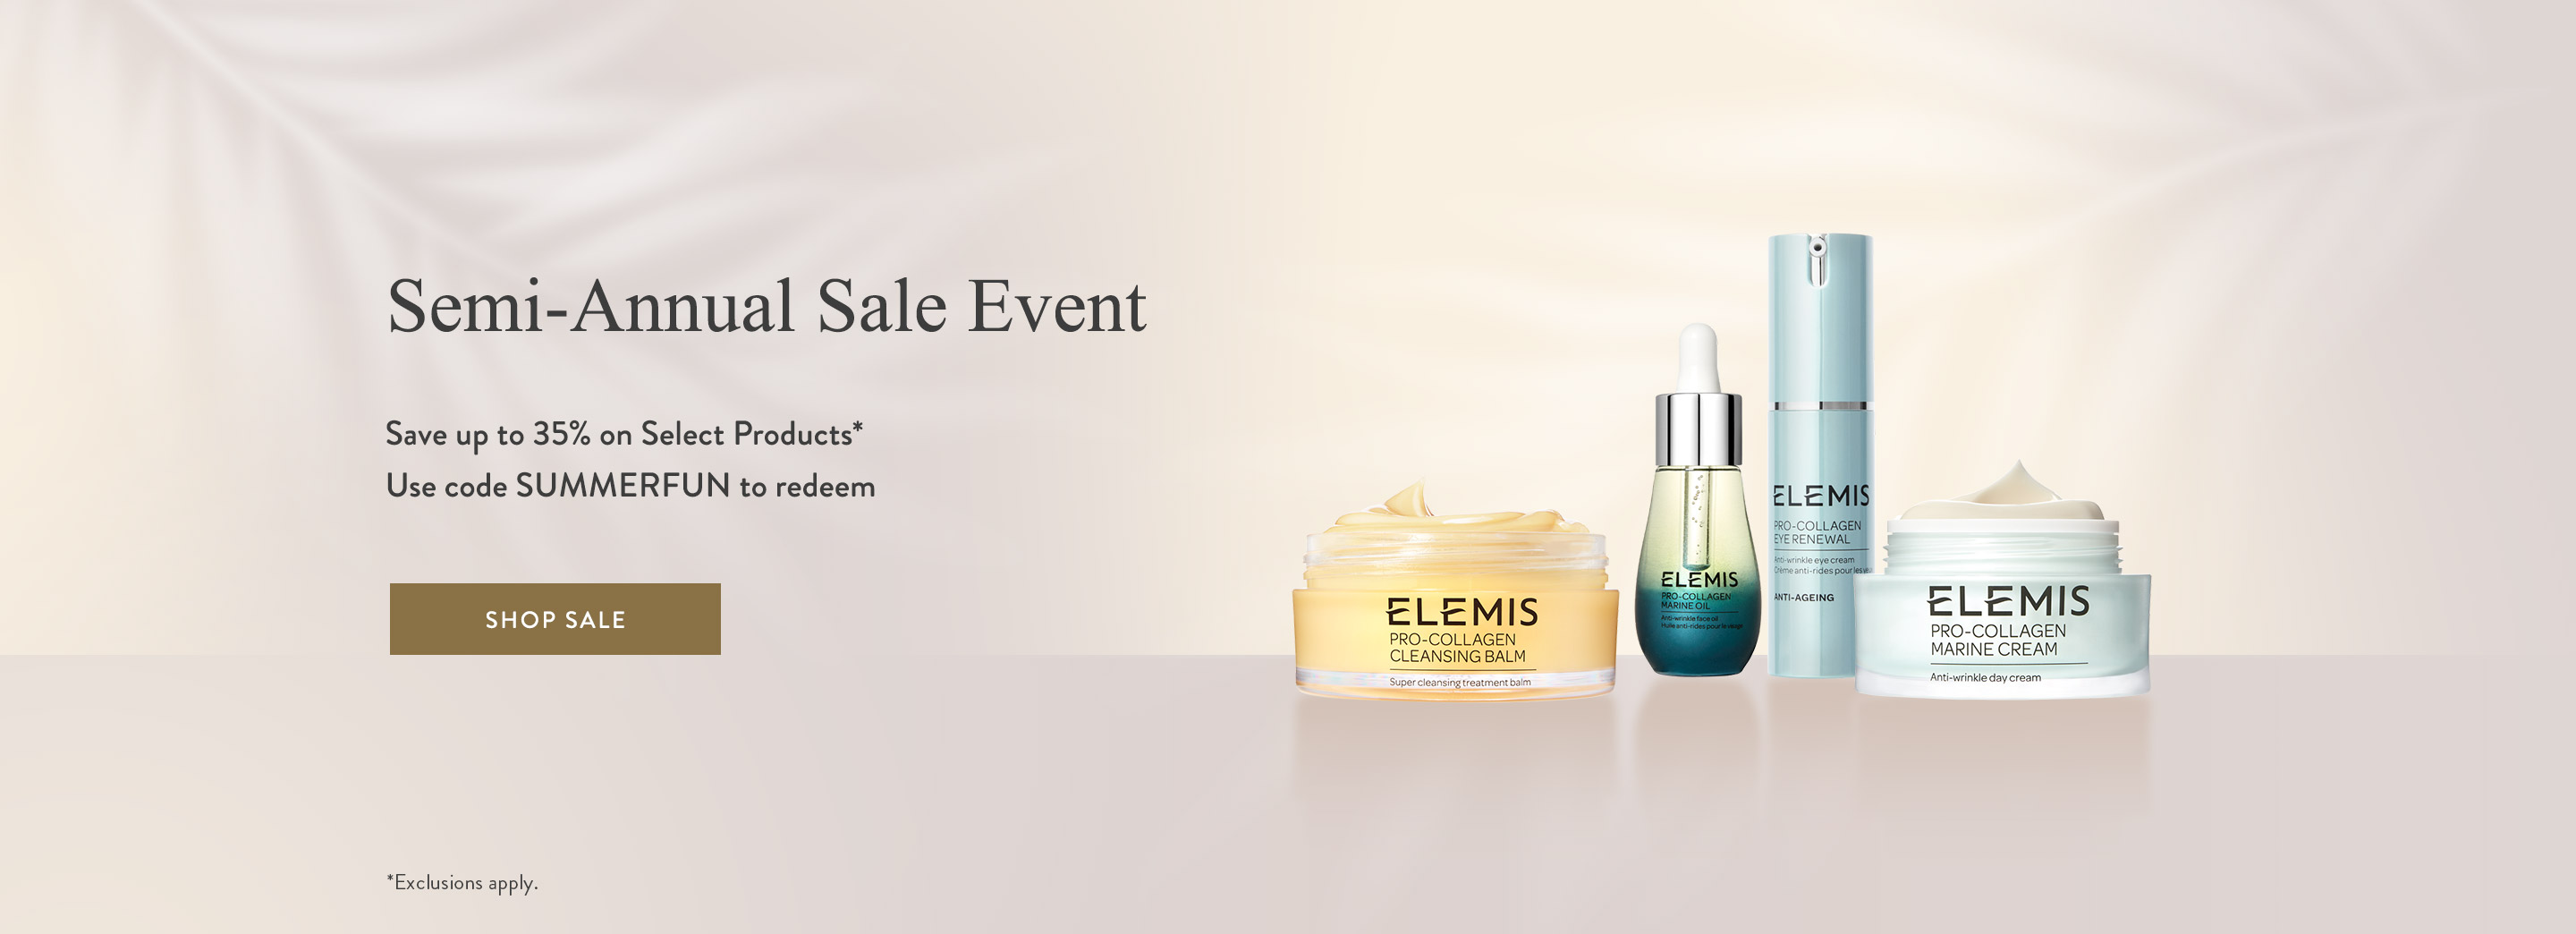 Semi-Annual Sale - Up to 35% on Select Products